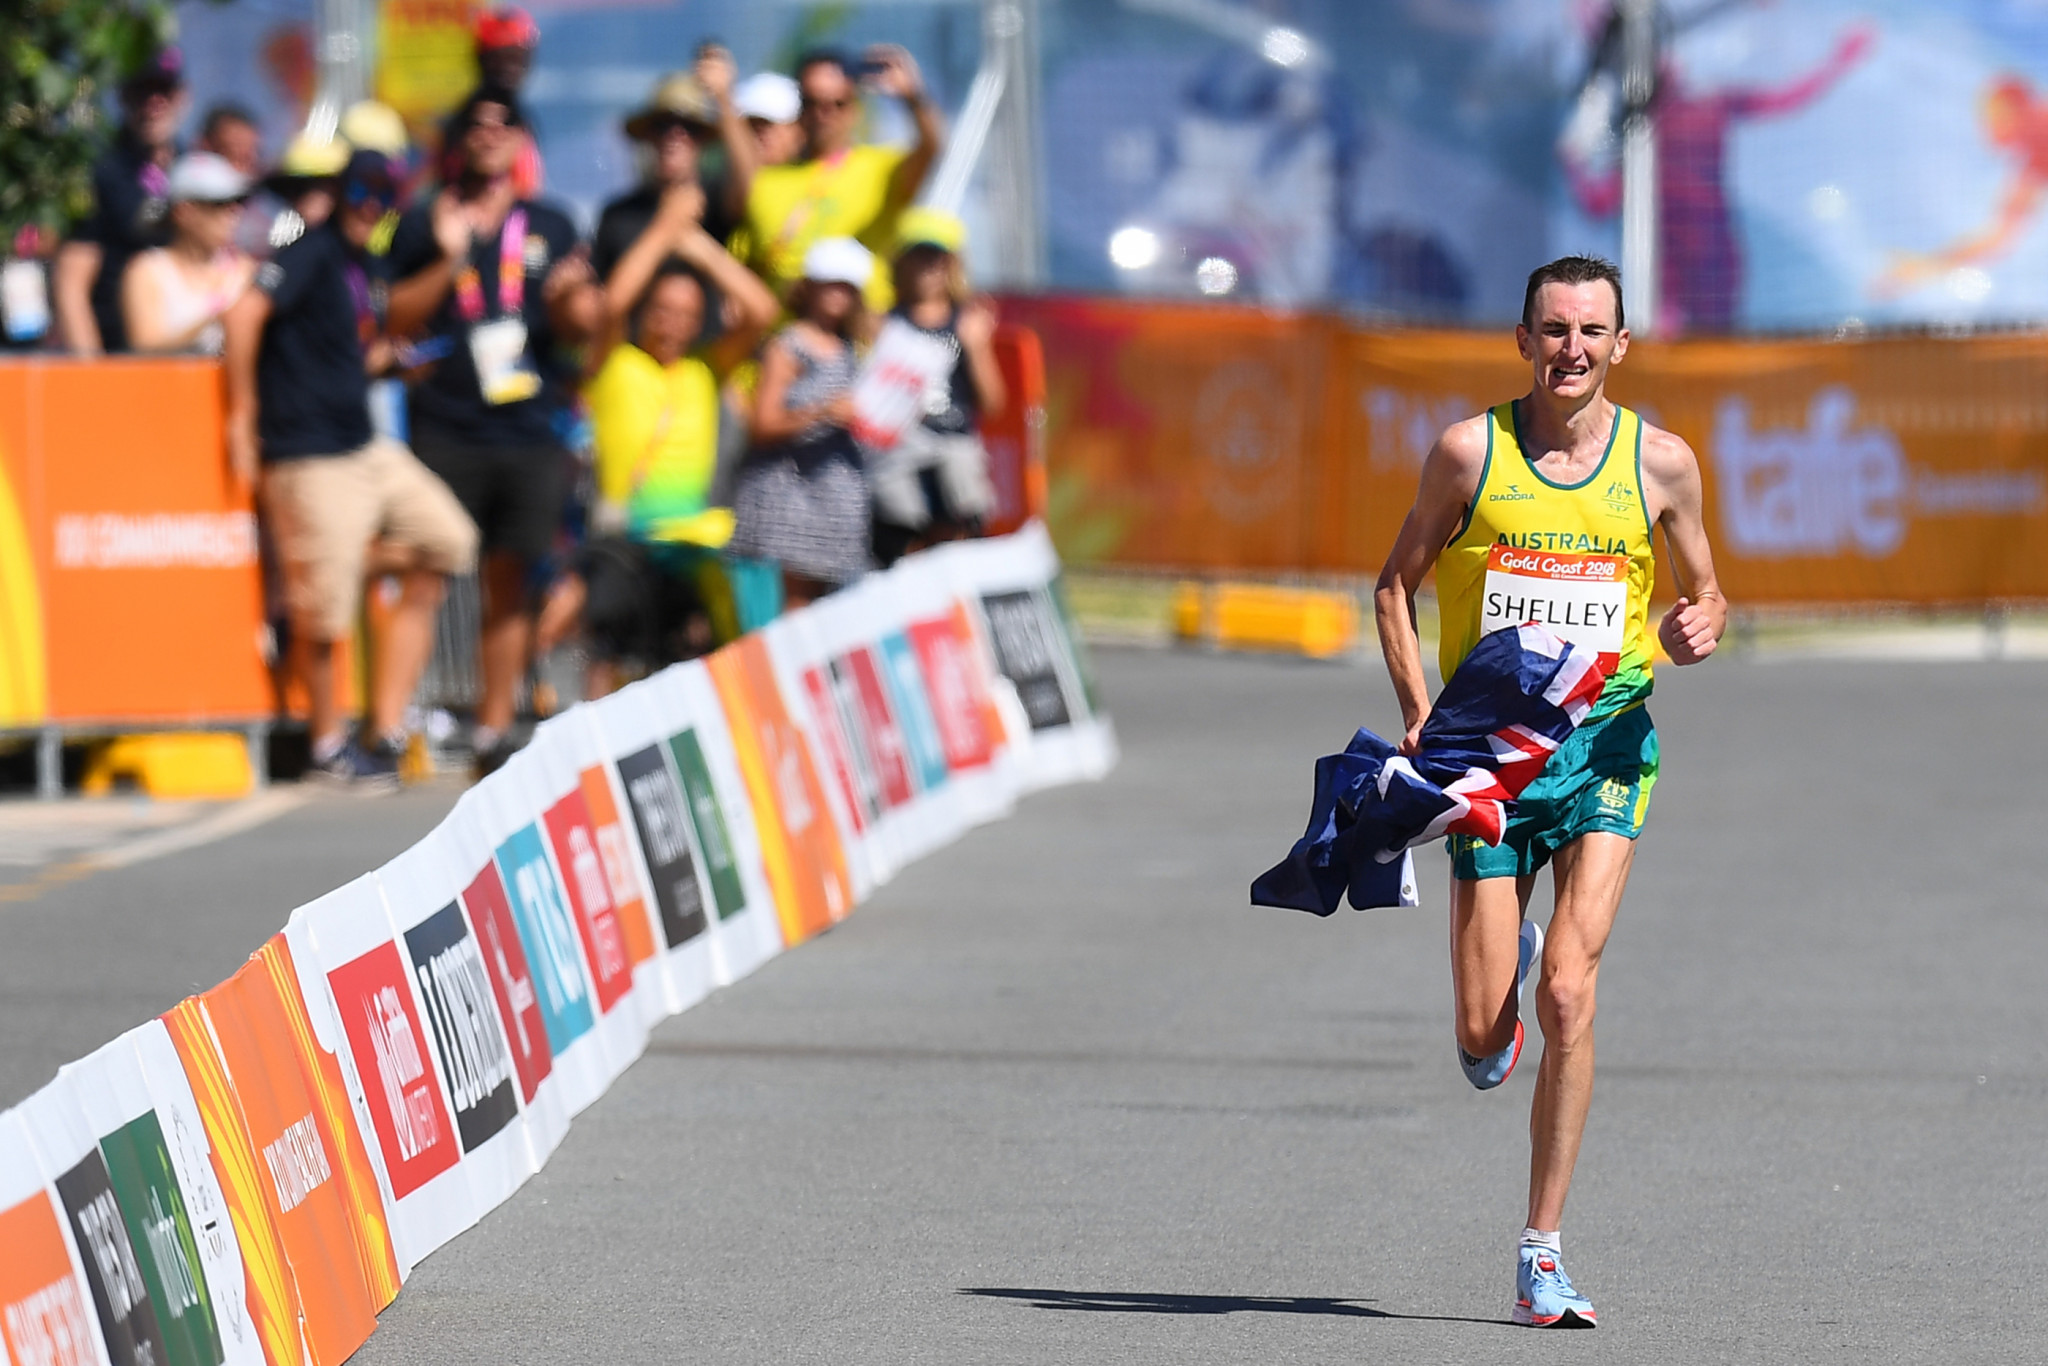 Shelley defends men's marathon title after leader Hawkins collapses near finish